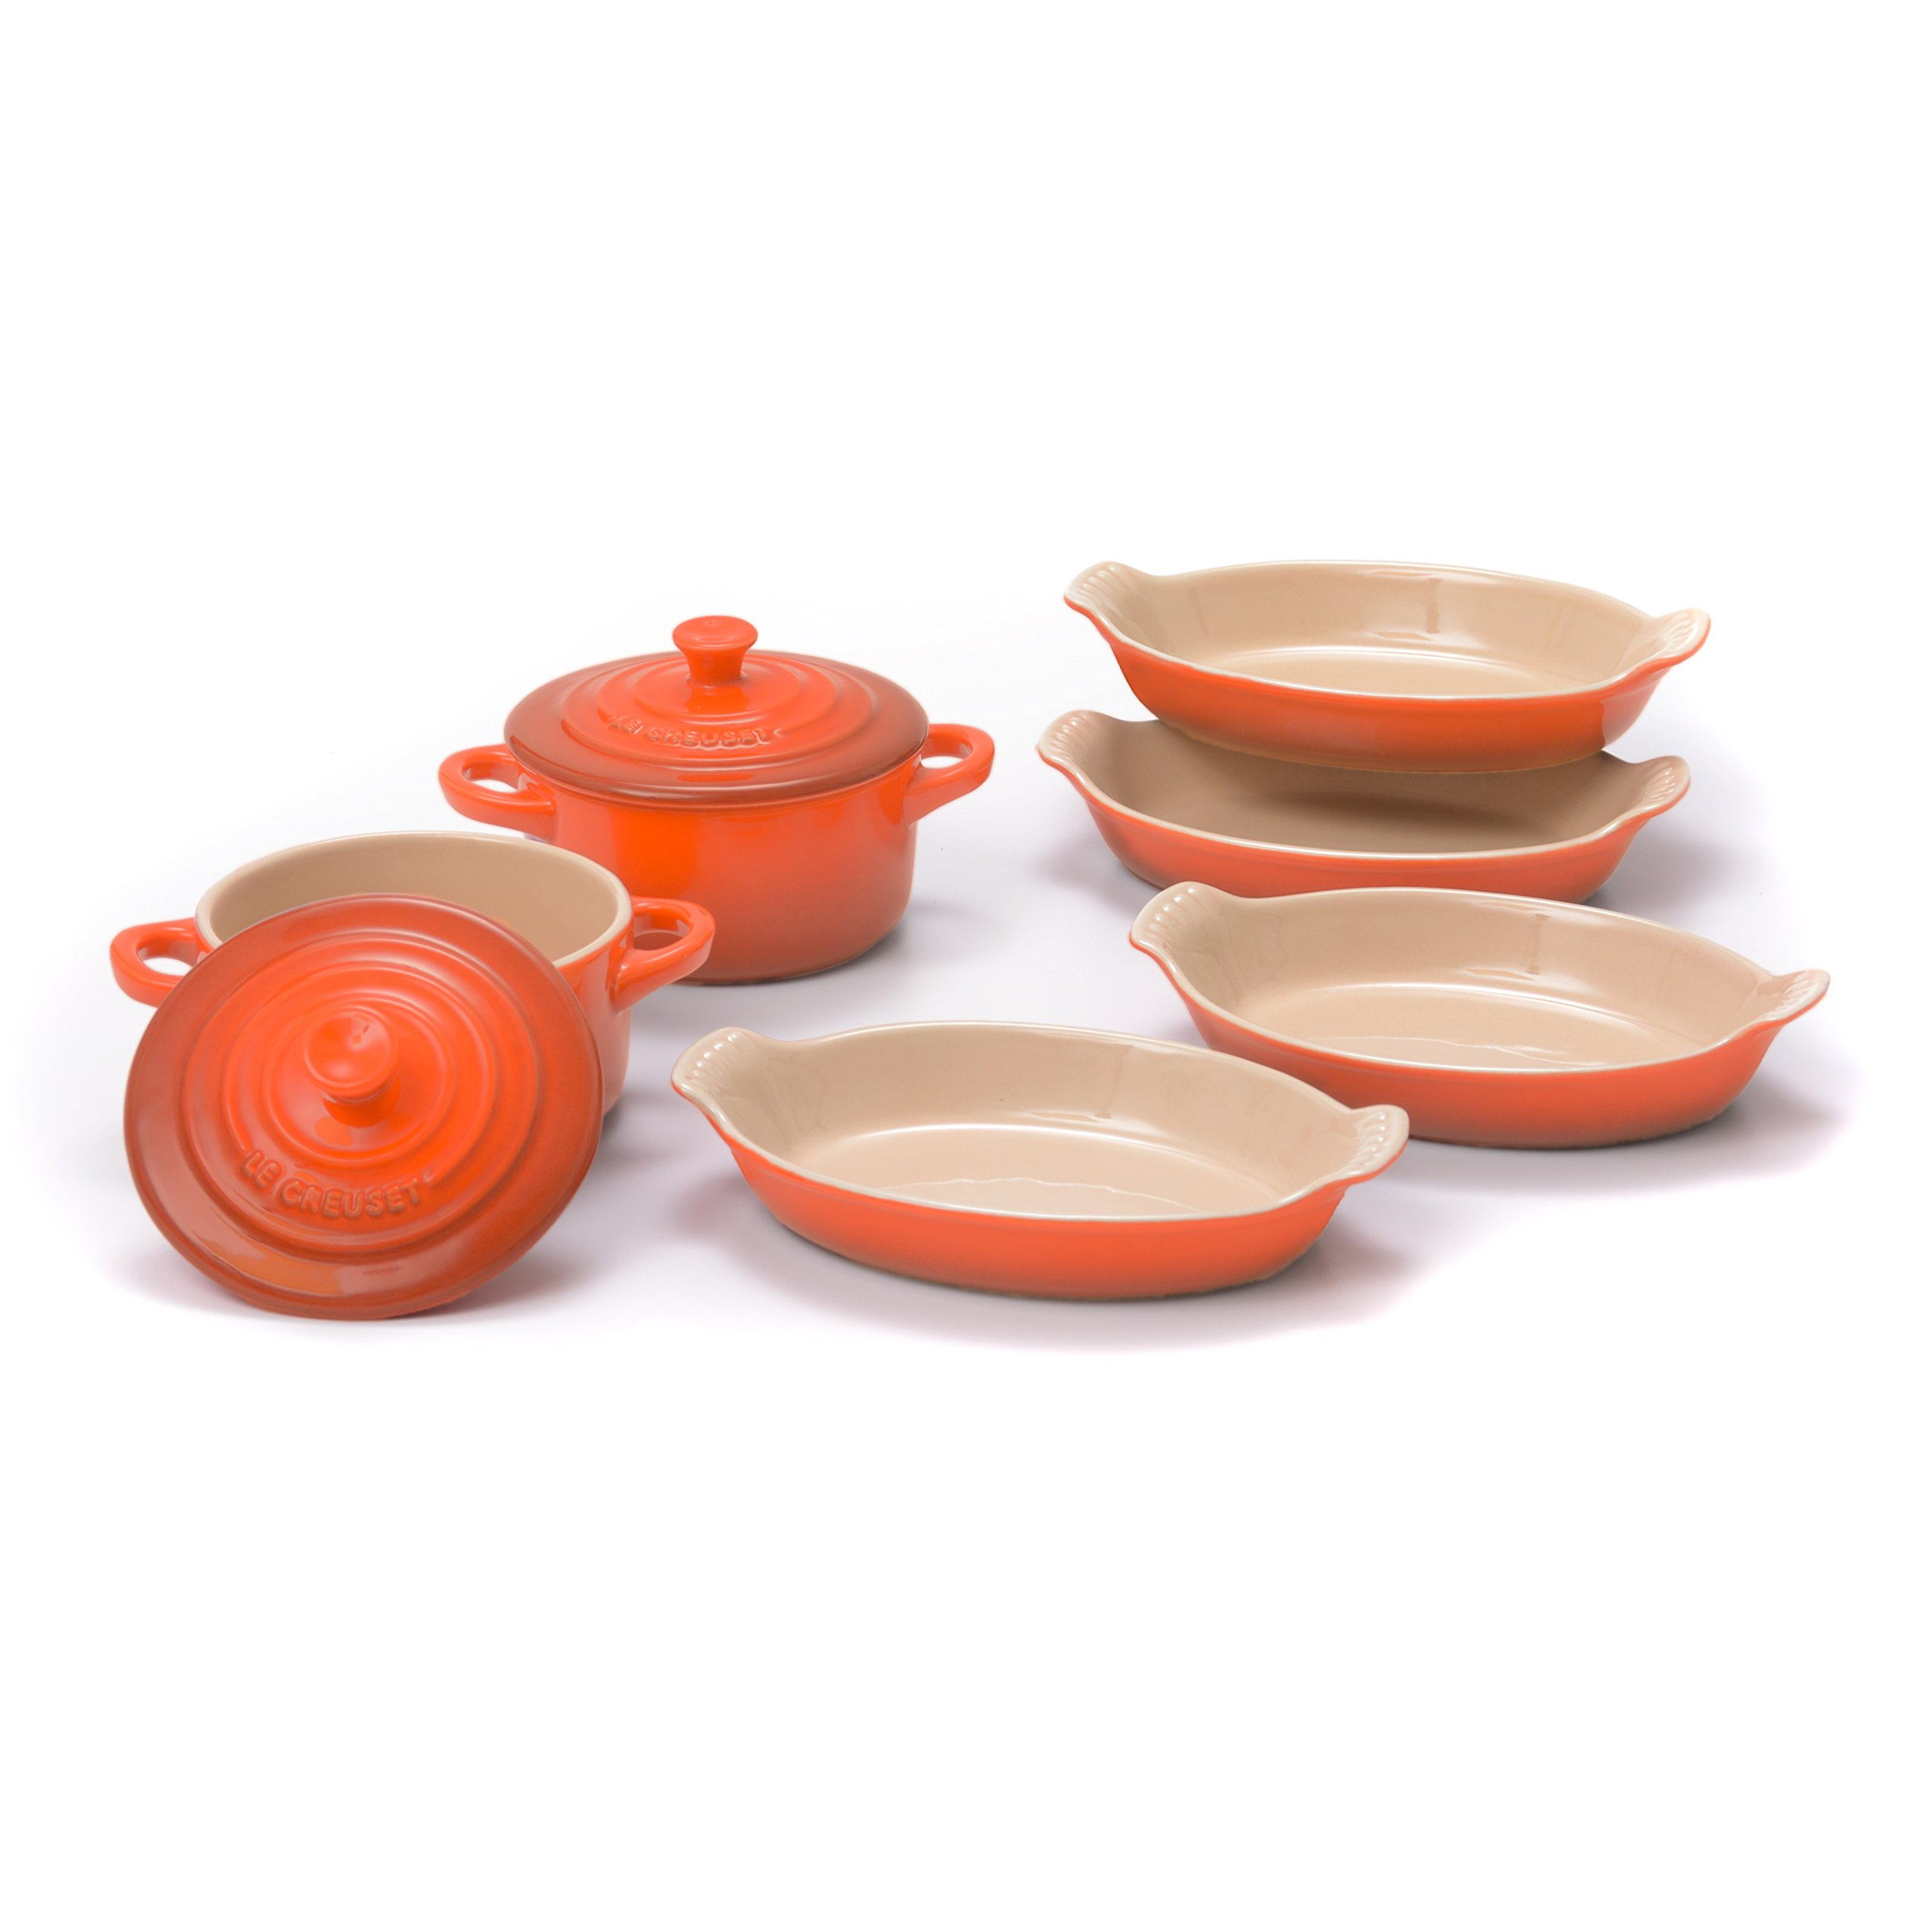 Le Creuset Heritage Flame Stoneware Set of 4 Petite 6 Ounce Au Gratin Dishes with 2 Mini Cocottes by Le Creuset (Image #1)